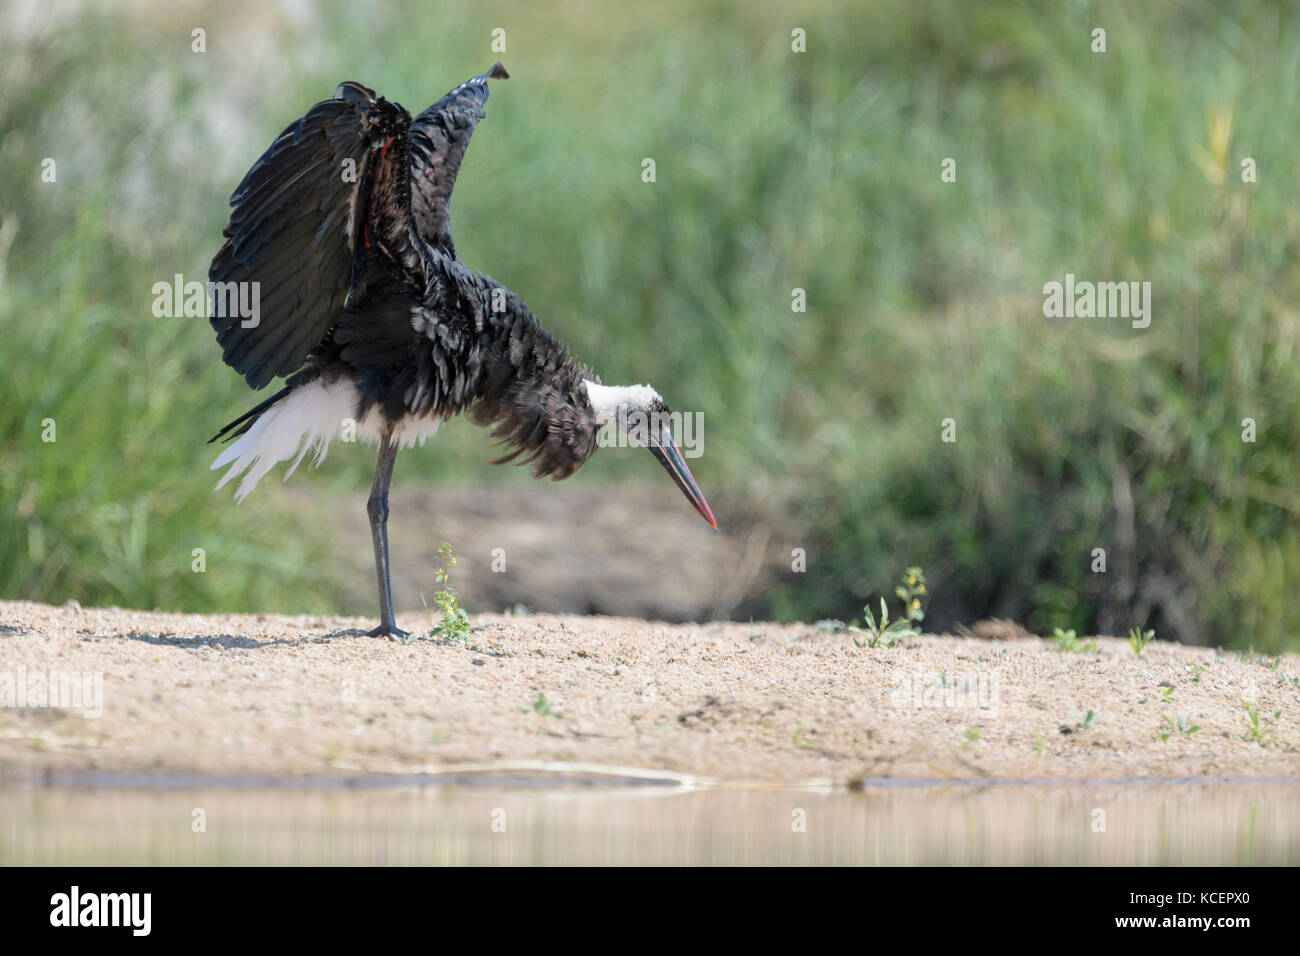 Woolly-necked stork (Ciconia episcopus) shaking his wings, Kruger National Park, South Africa - Stock Image